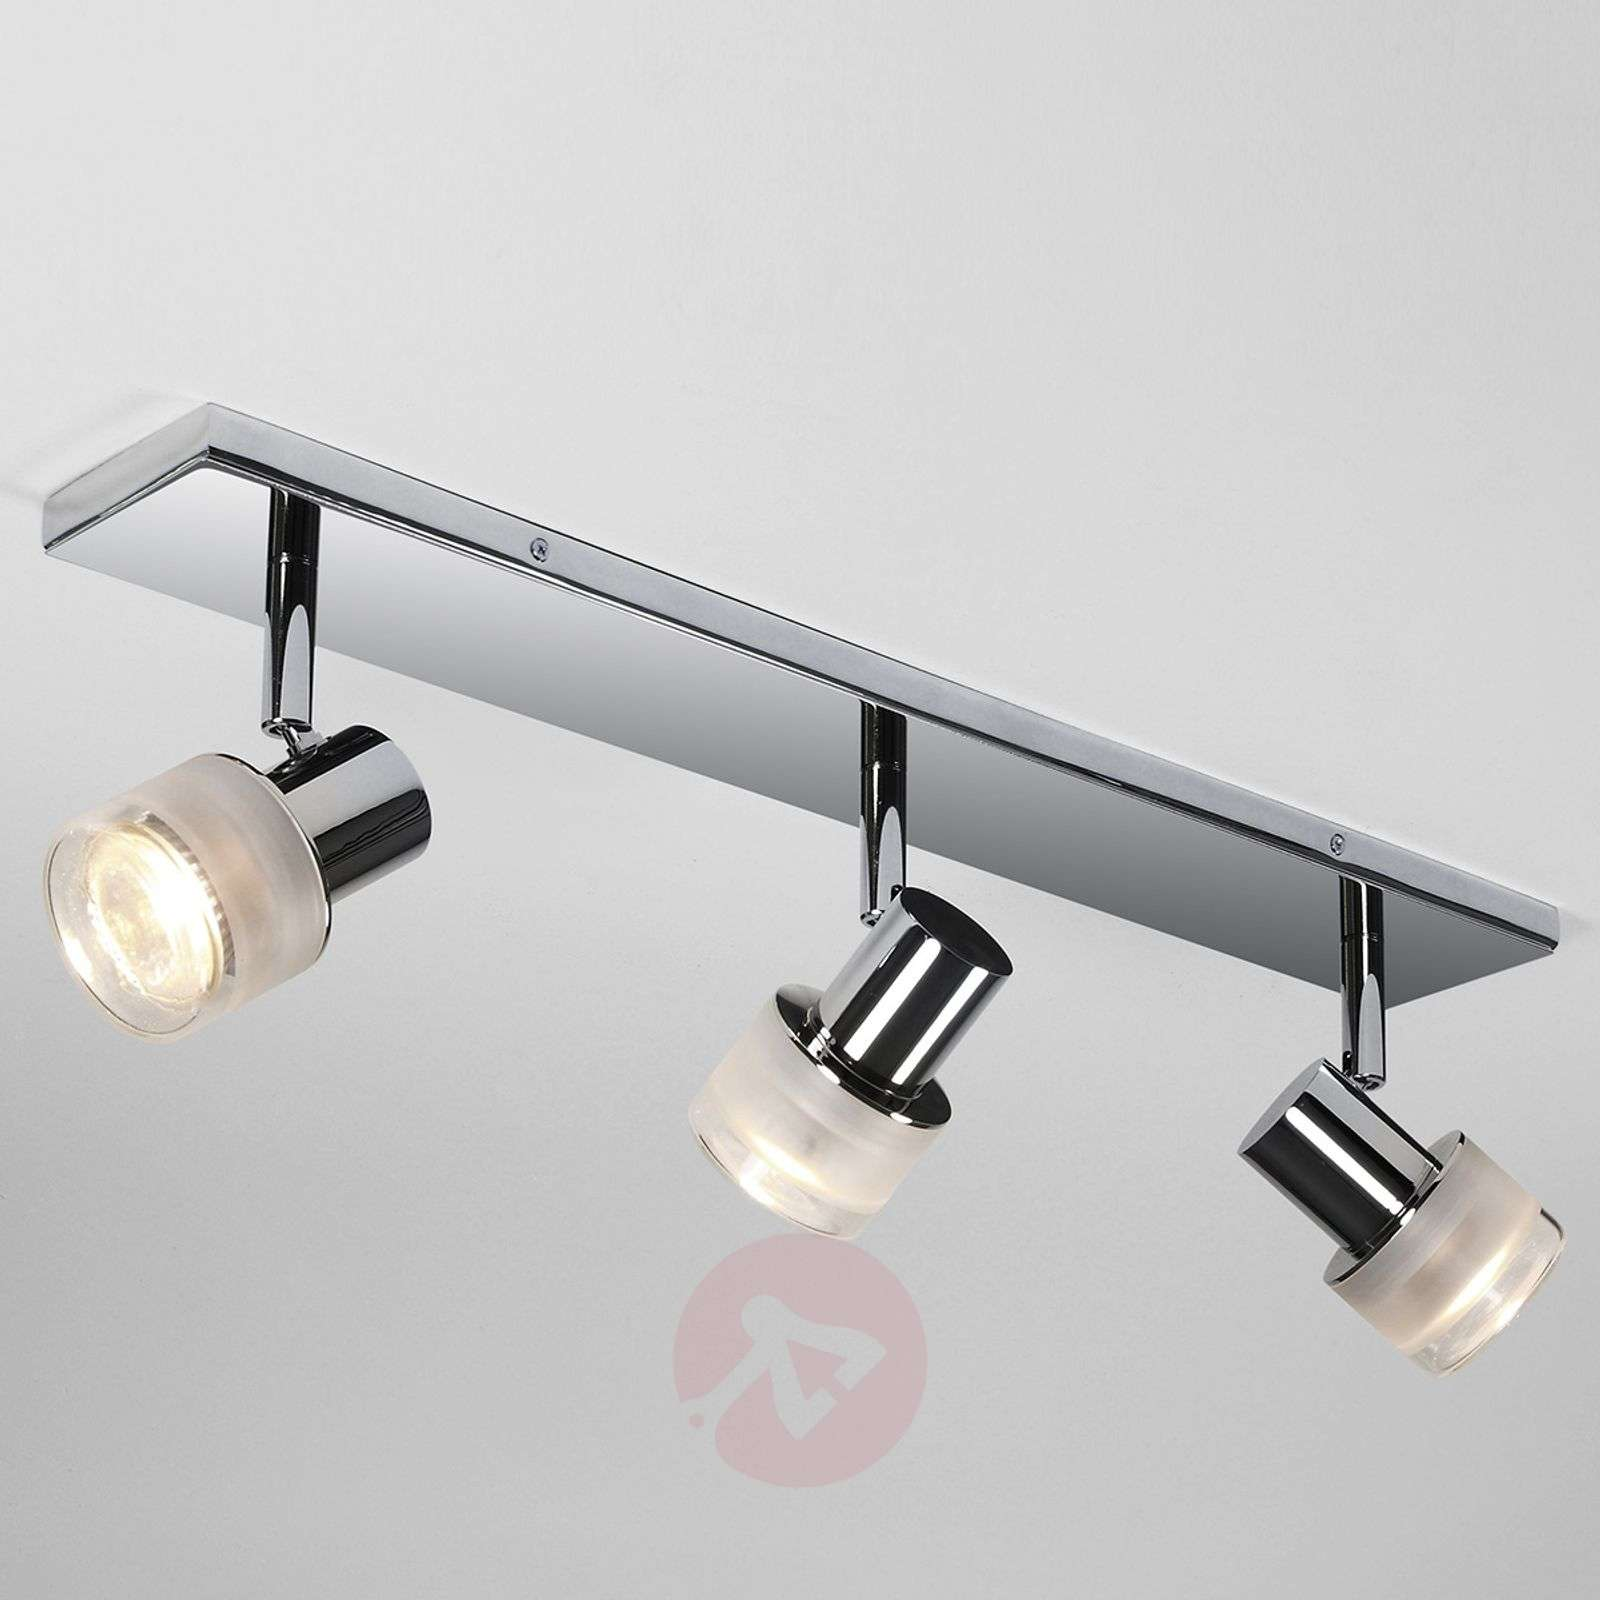 Tokai Ceiling Light Fashionable Three Bulbs Bar-1020305-02